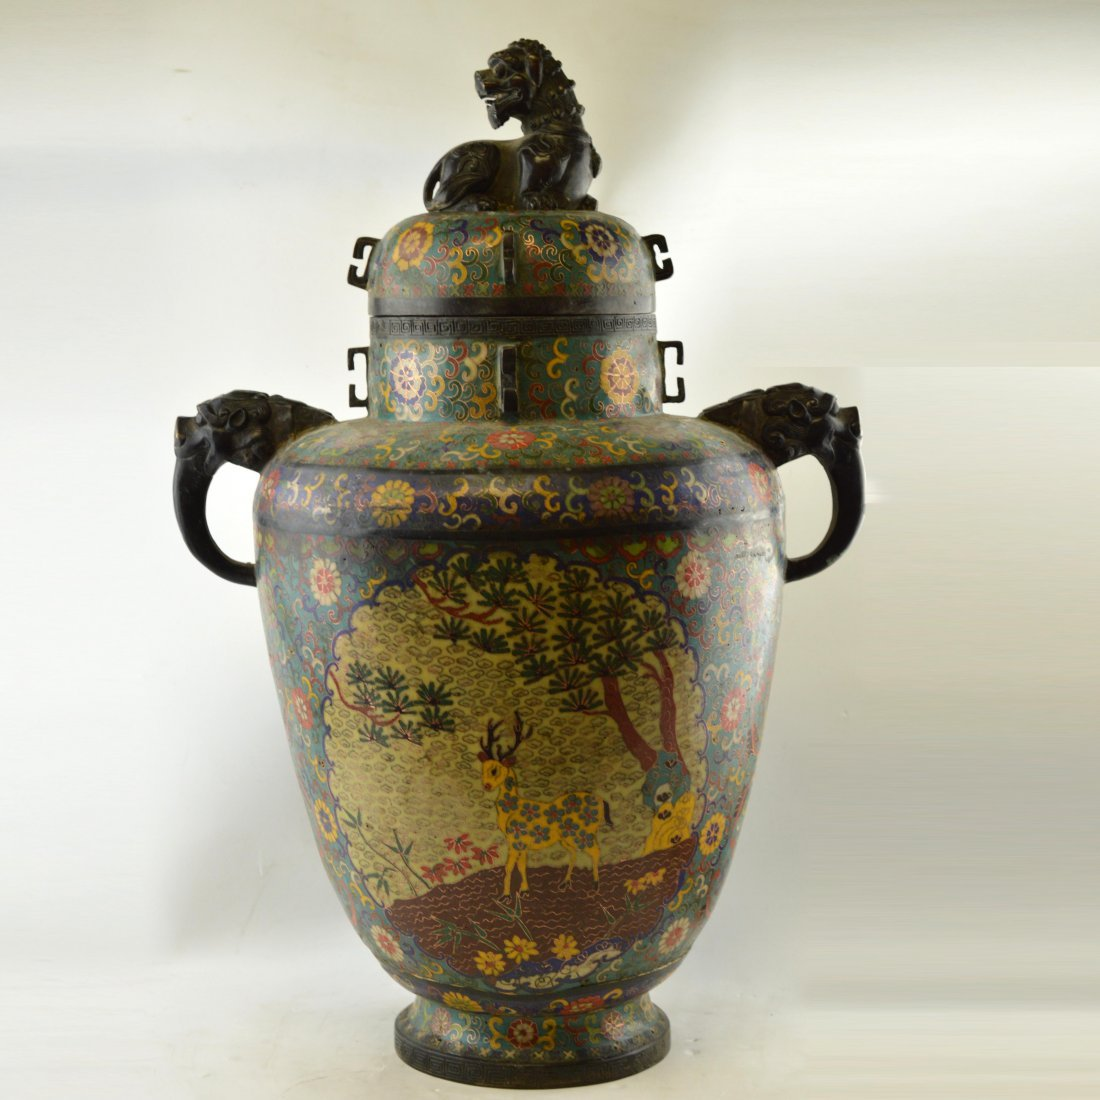 Large 19th Century Chinese Cloisonne Enamel Copper Vase